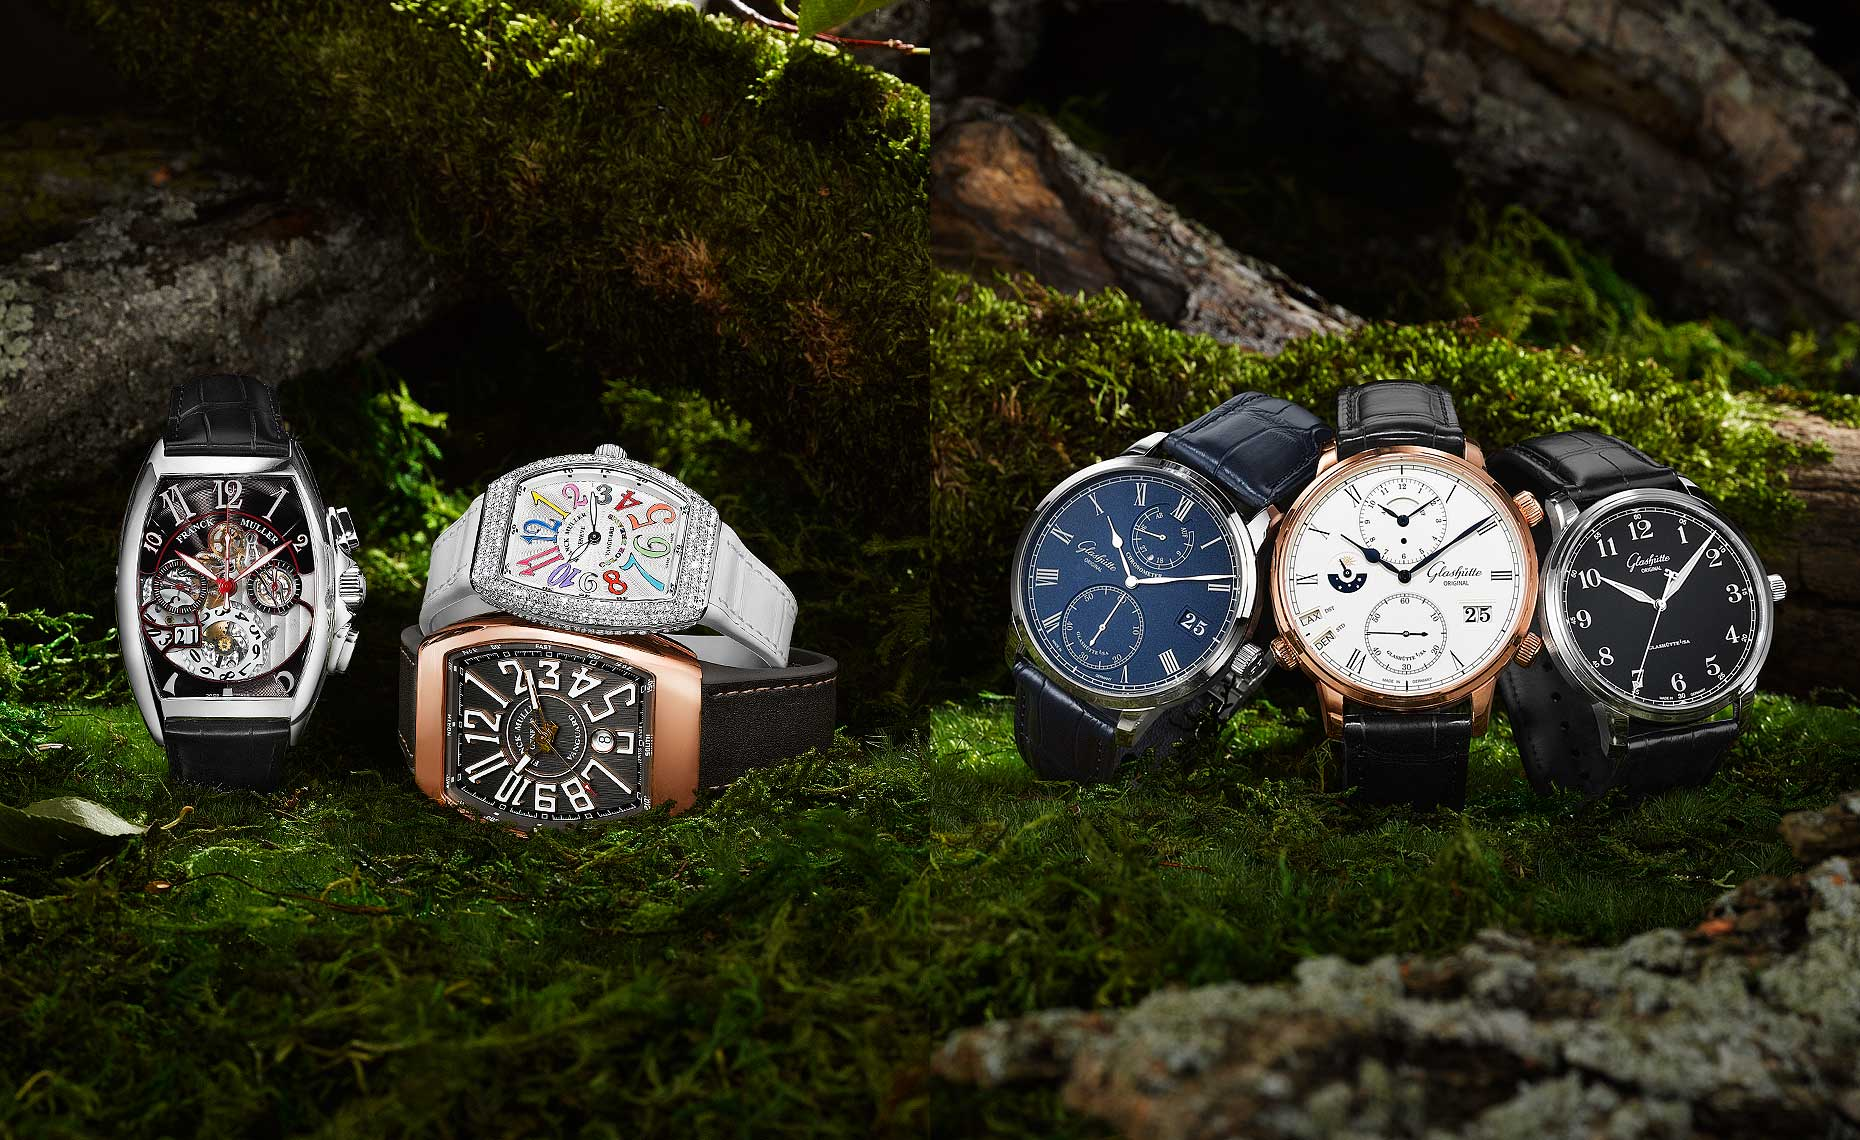 Timepieces in the Forrest